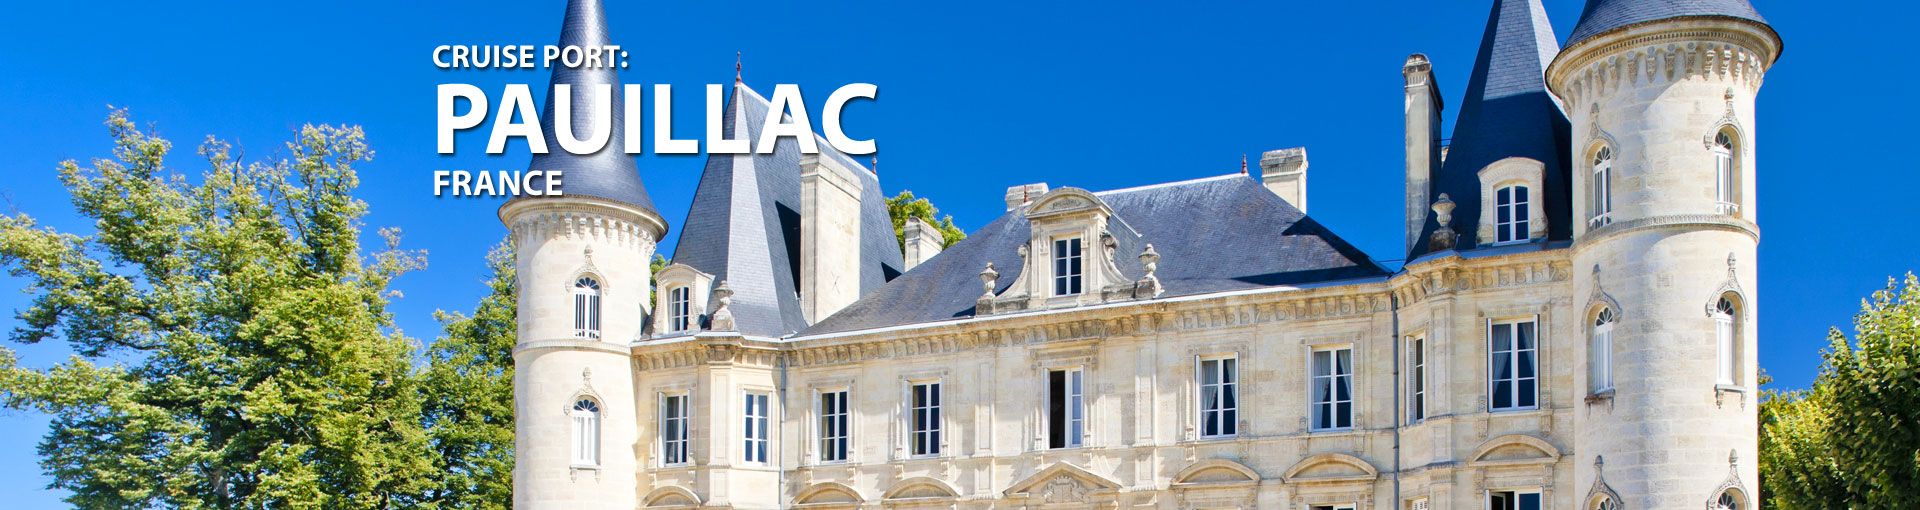 Cruises to Pauillac, France